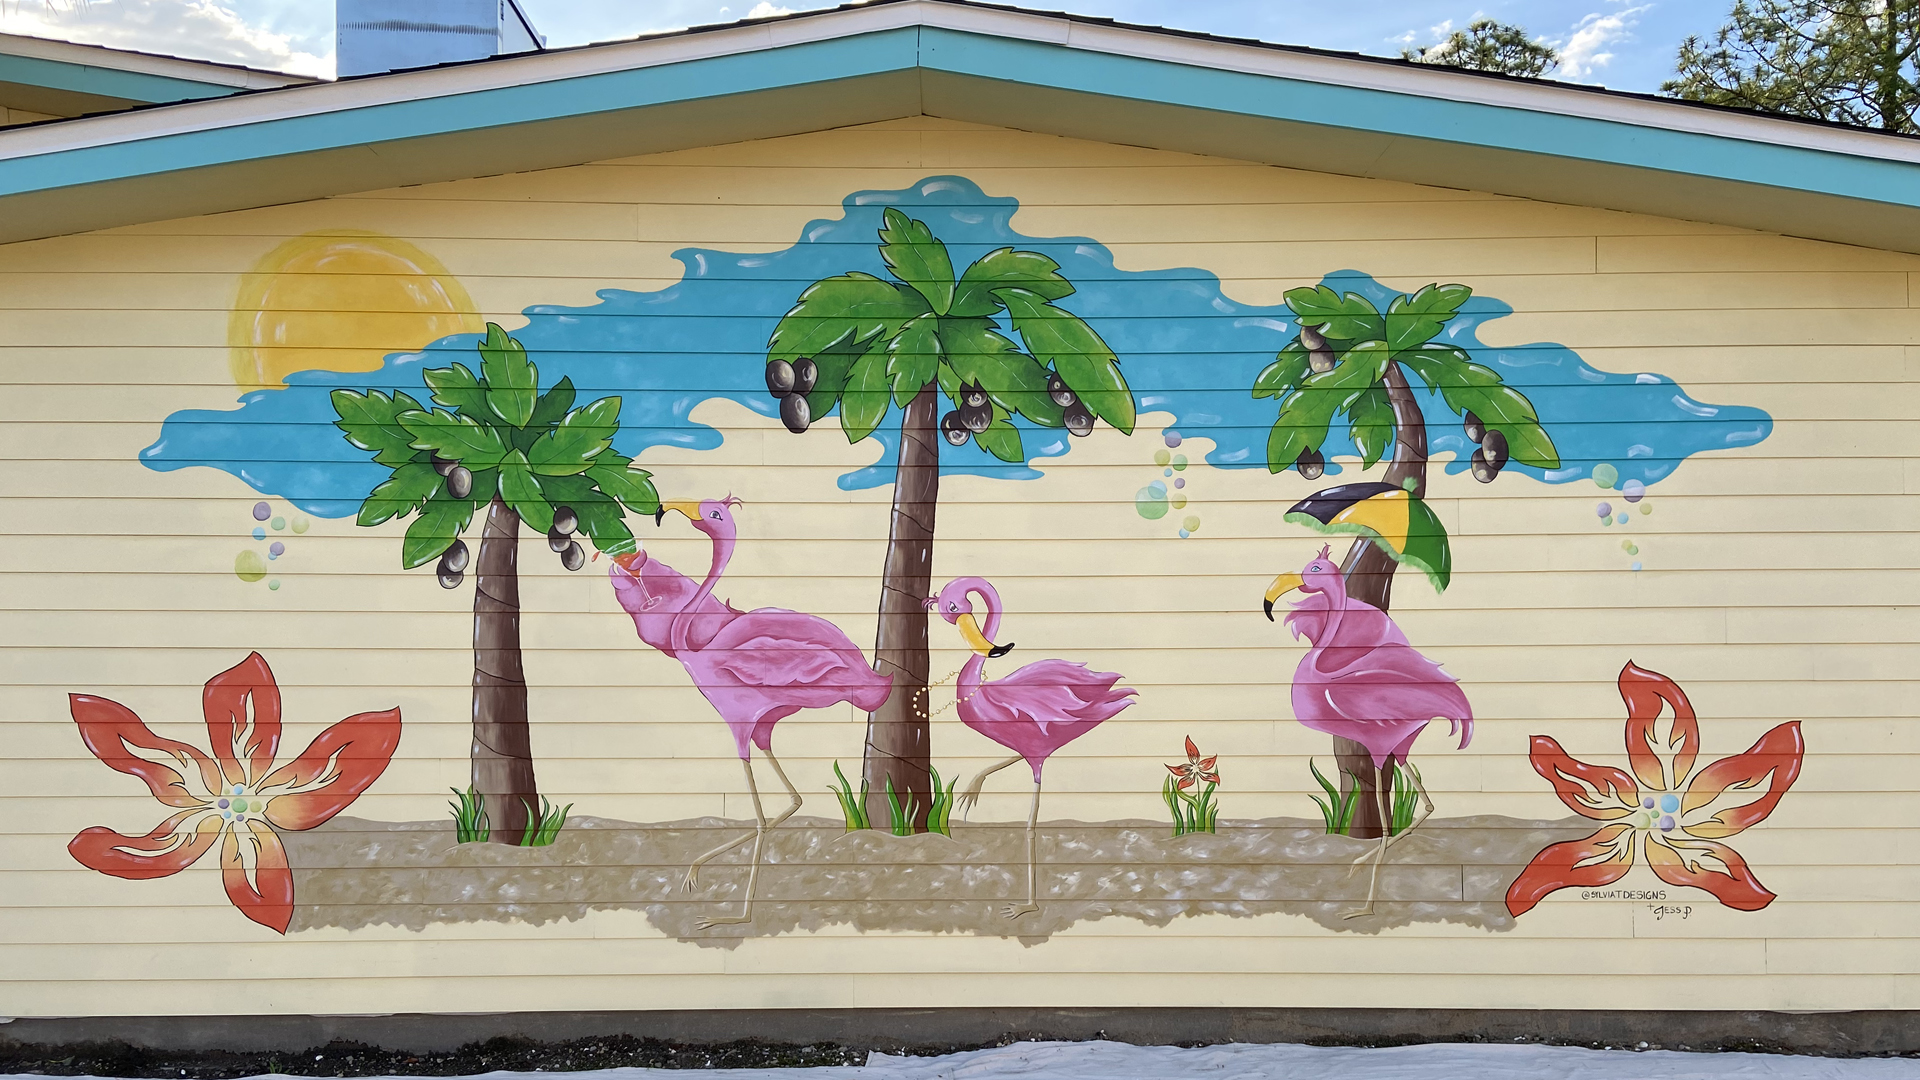 Sylvia T Designs – One of two fun, branded external murals that great guests with the right vibe in the parking lot of Liz's Where Y'at diner in Mandeville, across the lake from New Orleans.